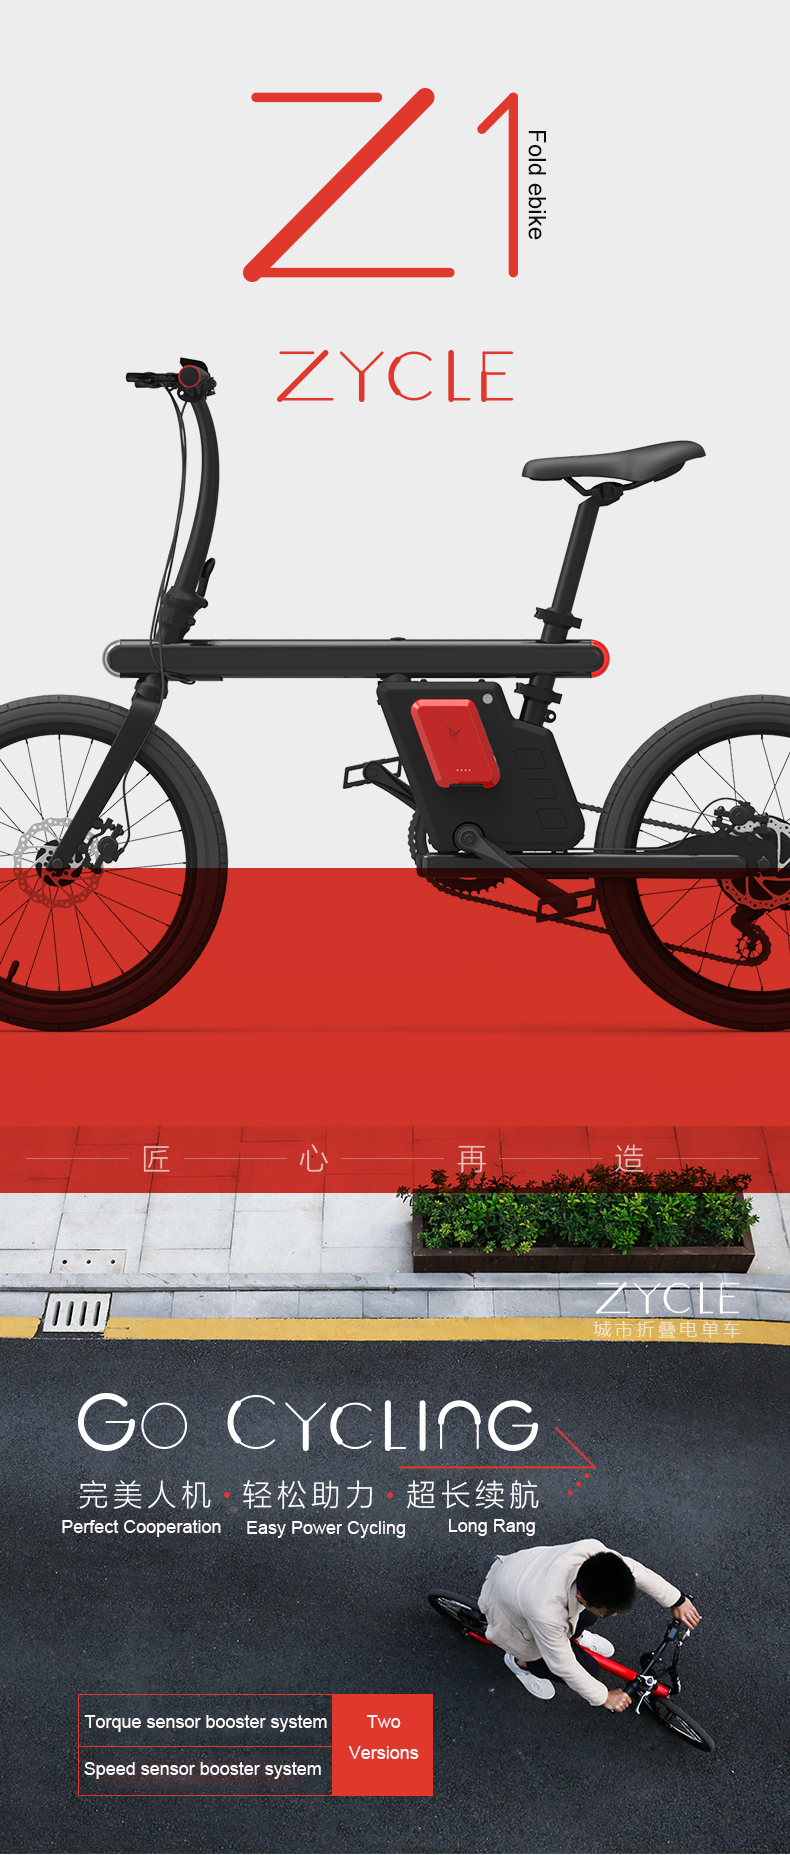 HTB1iwd5XErrK1RkSne1q6ArVVXaw - 20inch Electrical metropolis bike 36V lithium battery   fold electrical bicycle pace model 250w motor Pure electrical driving ebike